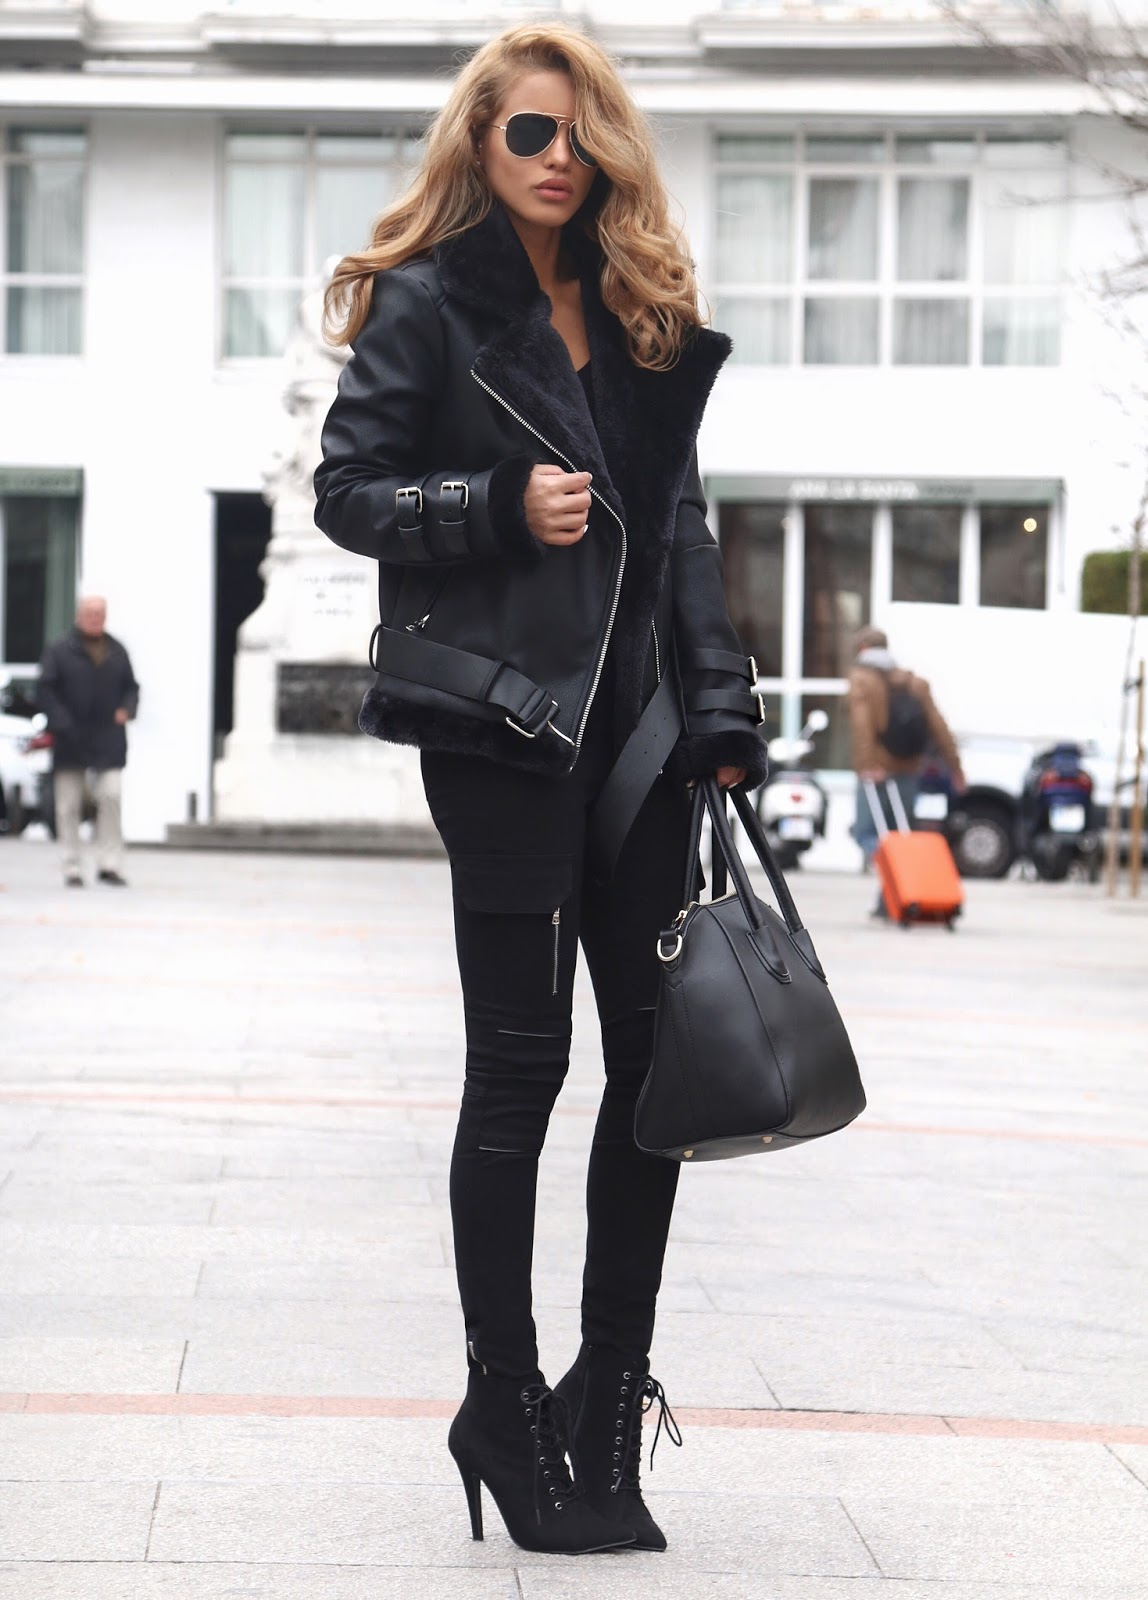 For a stylish winter look, we will always recommend the all-black trend! Easy and achievable, this style will look good with minimal accessorising. Via Nada Adelle. Shearling Biker Jacket: Maniere De Vo, Top: Topshop, Trousers: Maniere De Voir, Boots: River Island.